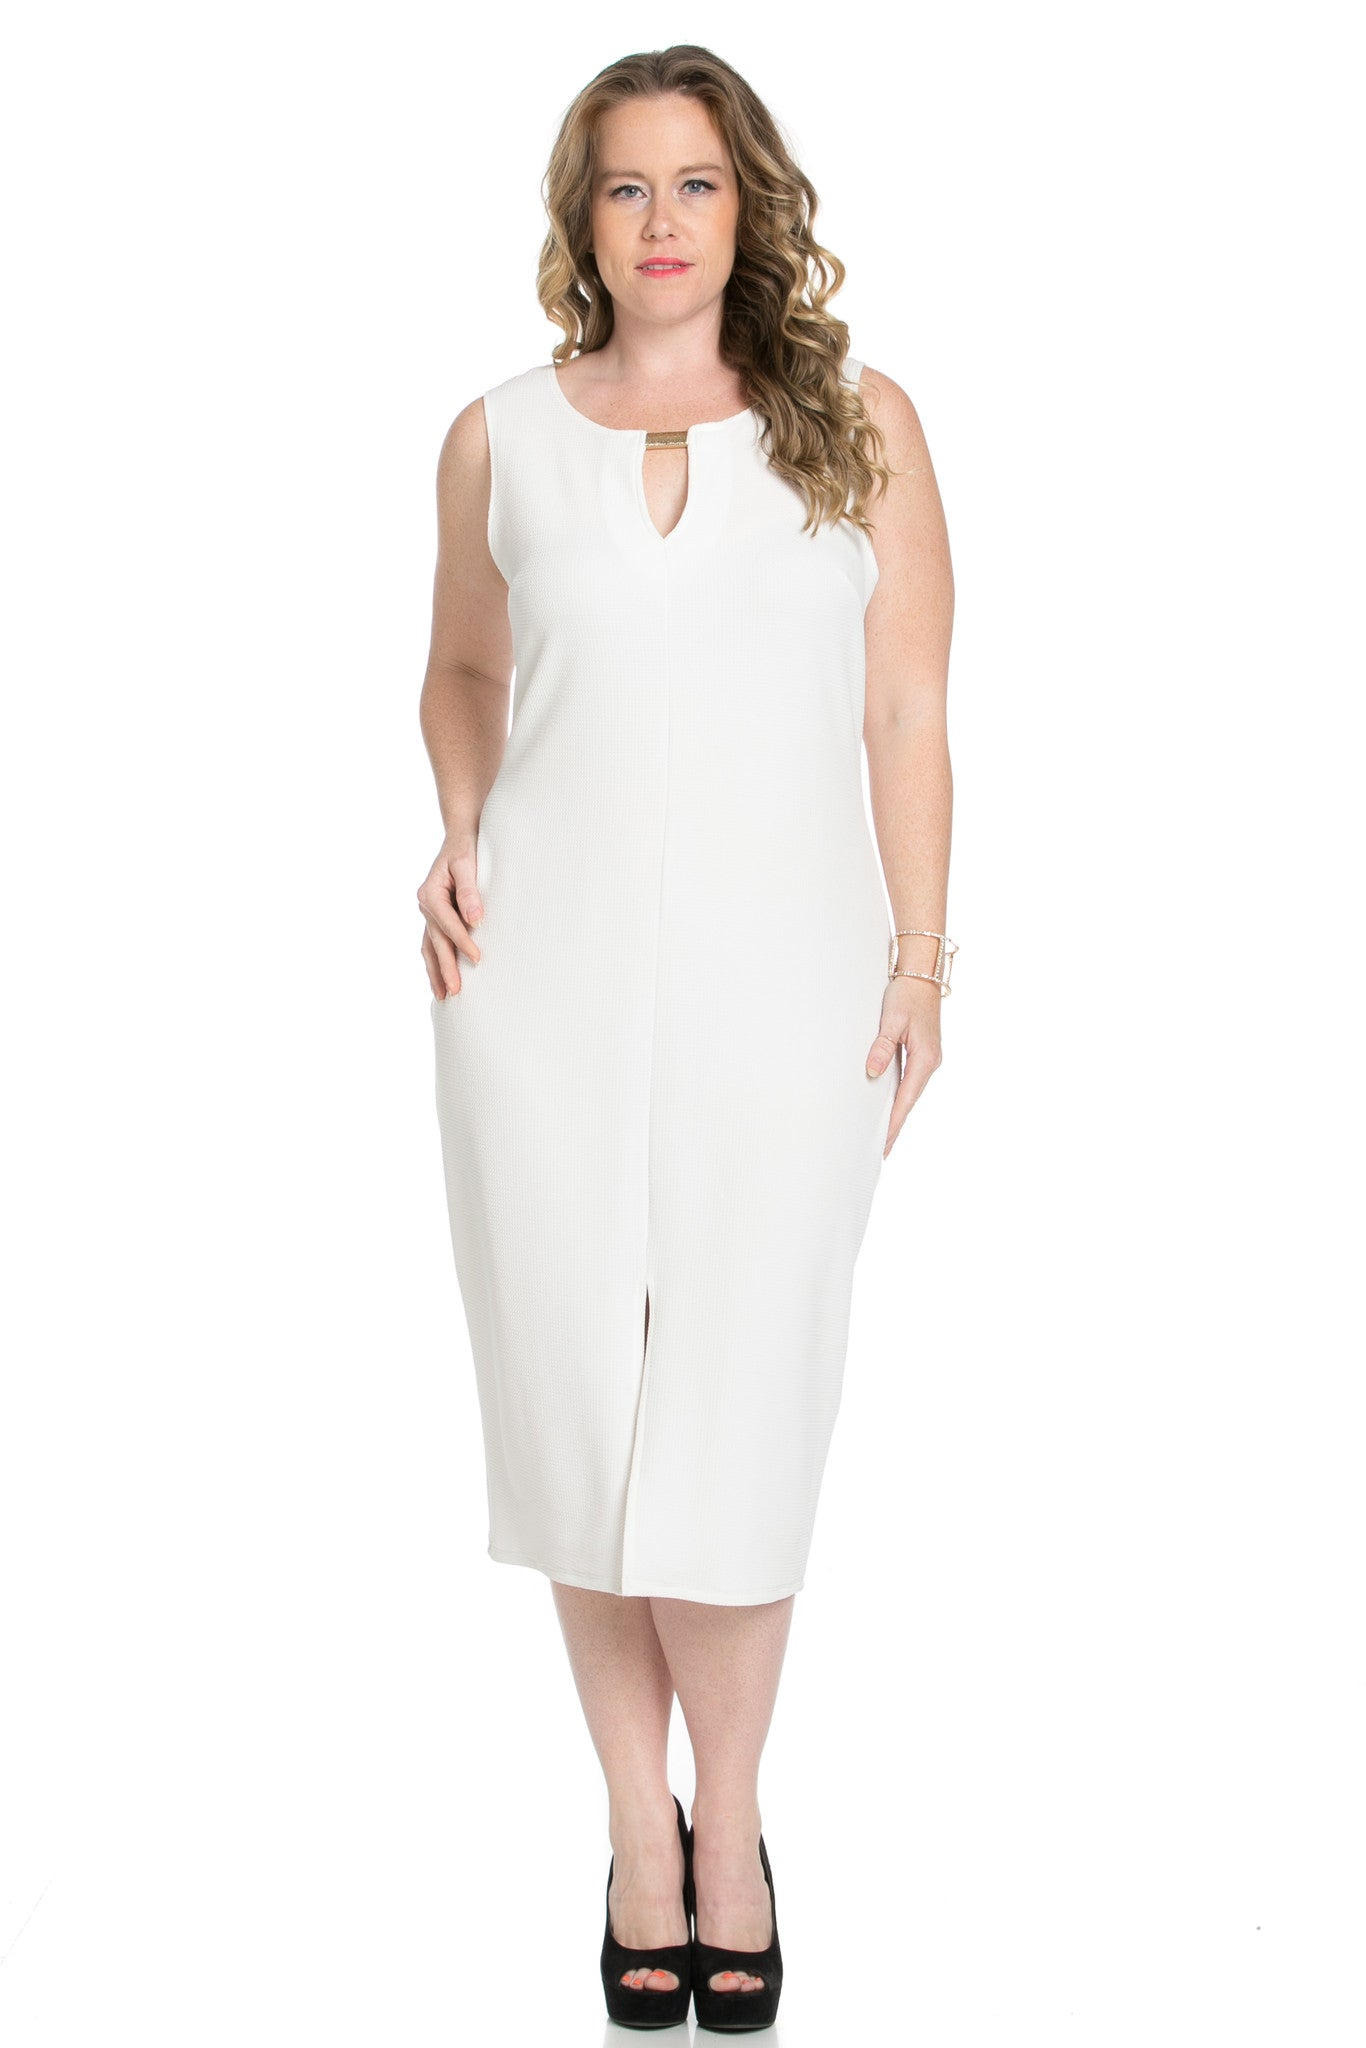 White Modest a Bit with Bare Shoulders Dress - Dresses - My Yuccie - 4